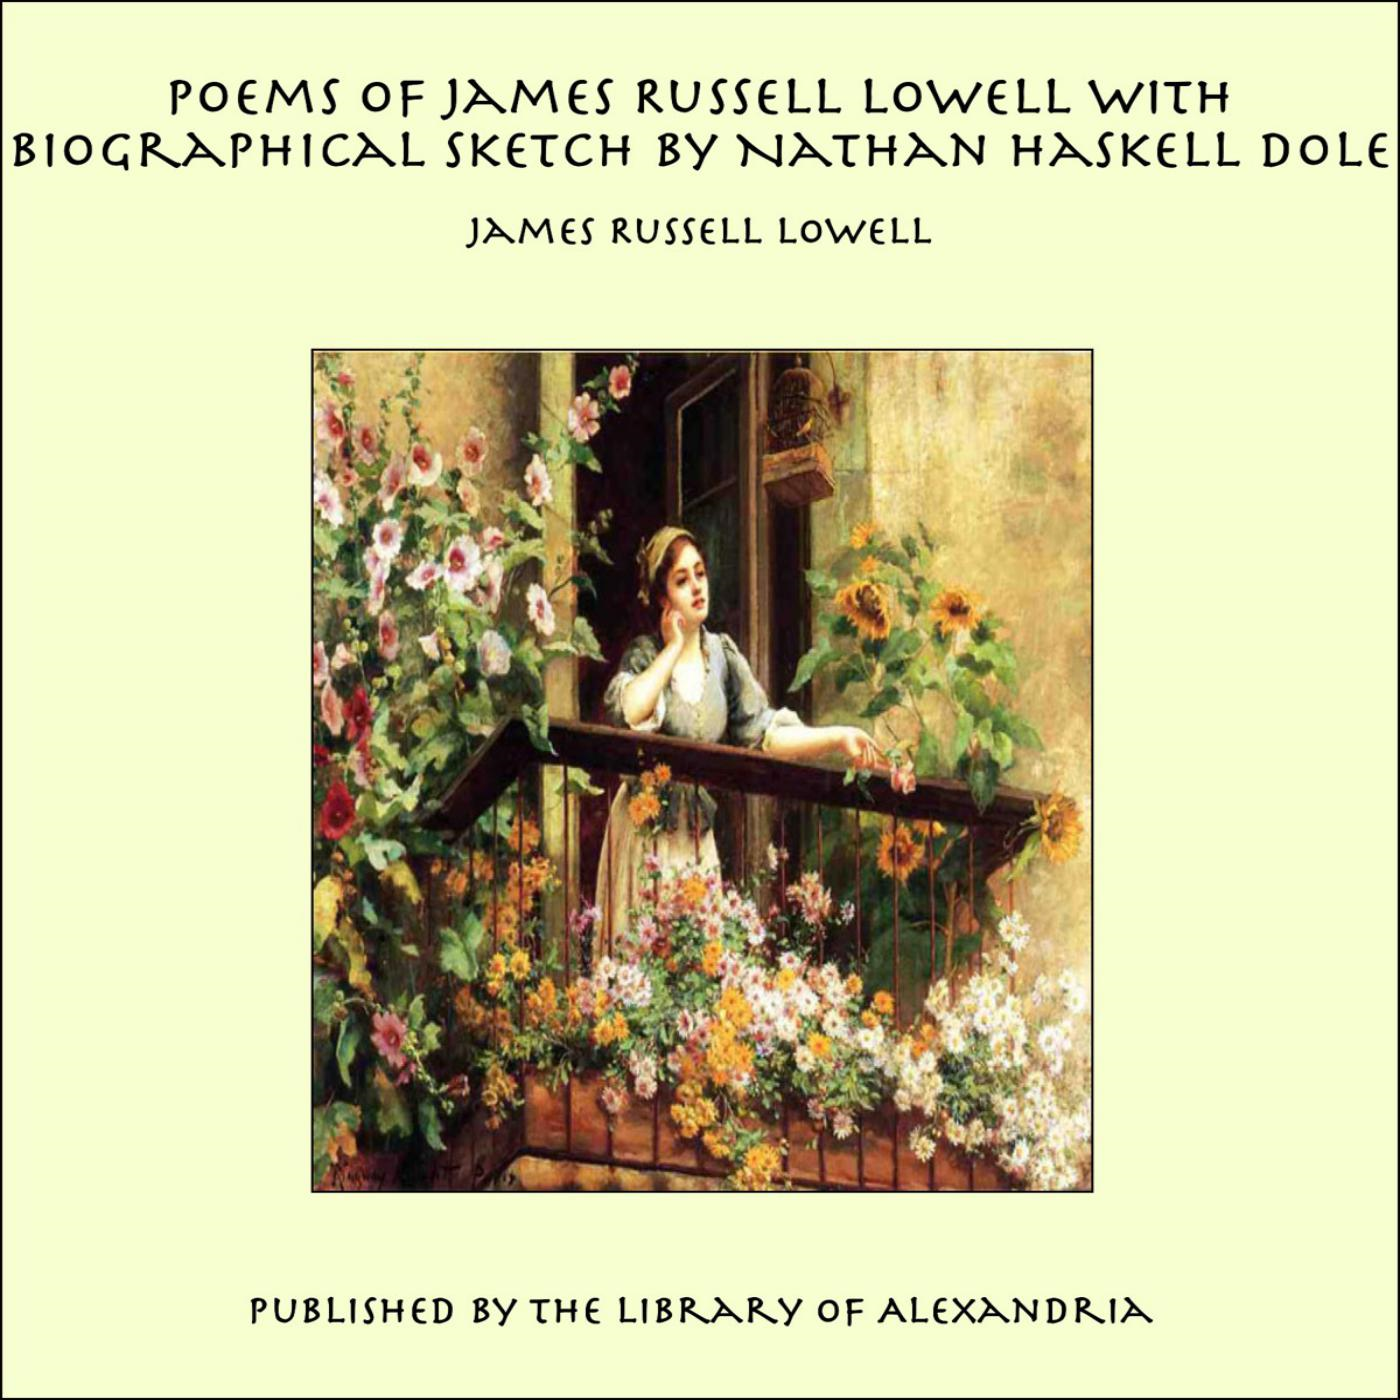 Poems of James Russell Lowell With Biographical Sketch by Nathan Haskell Dole